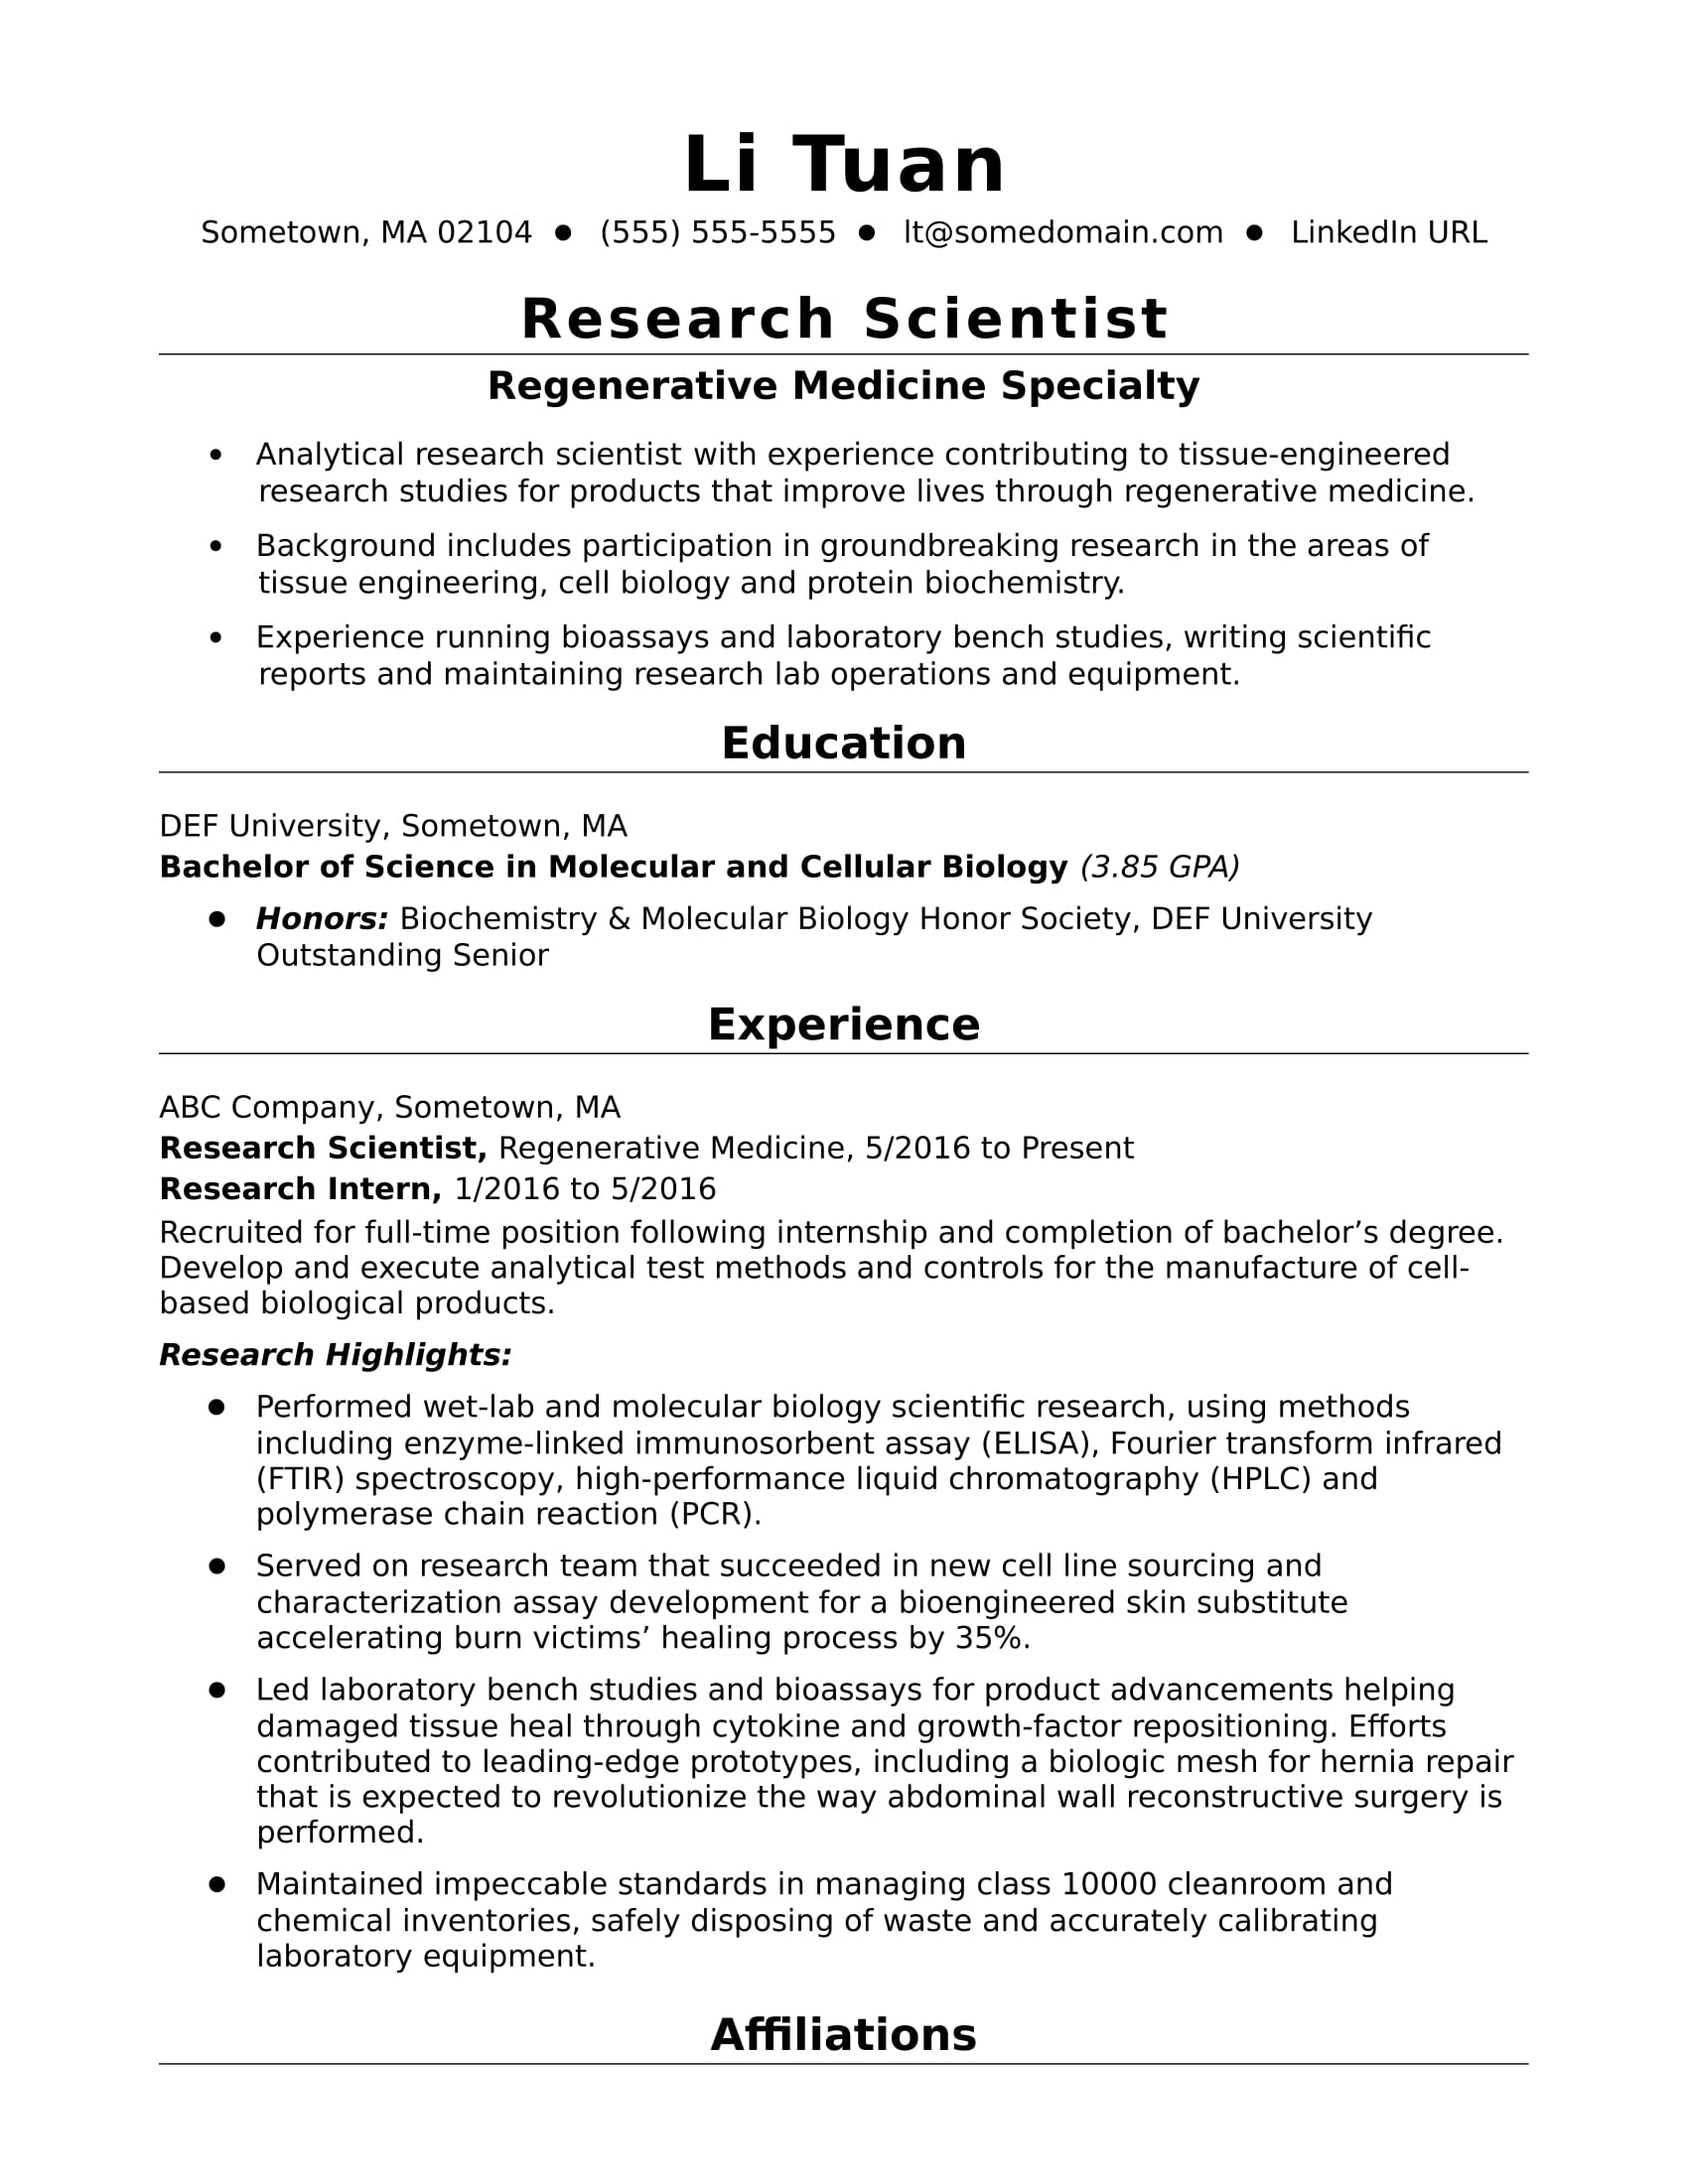 entry level research scientist resume sample monster for pharmaceutical and development Resume Resume For Pharmaceutical Research And Development